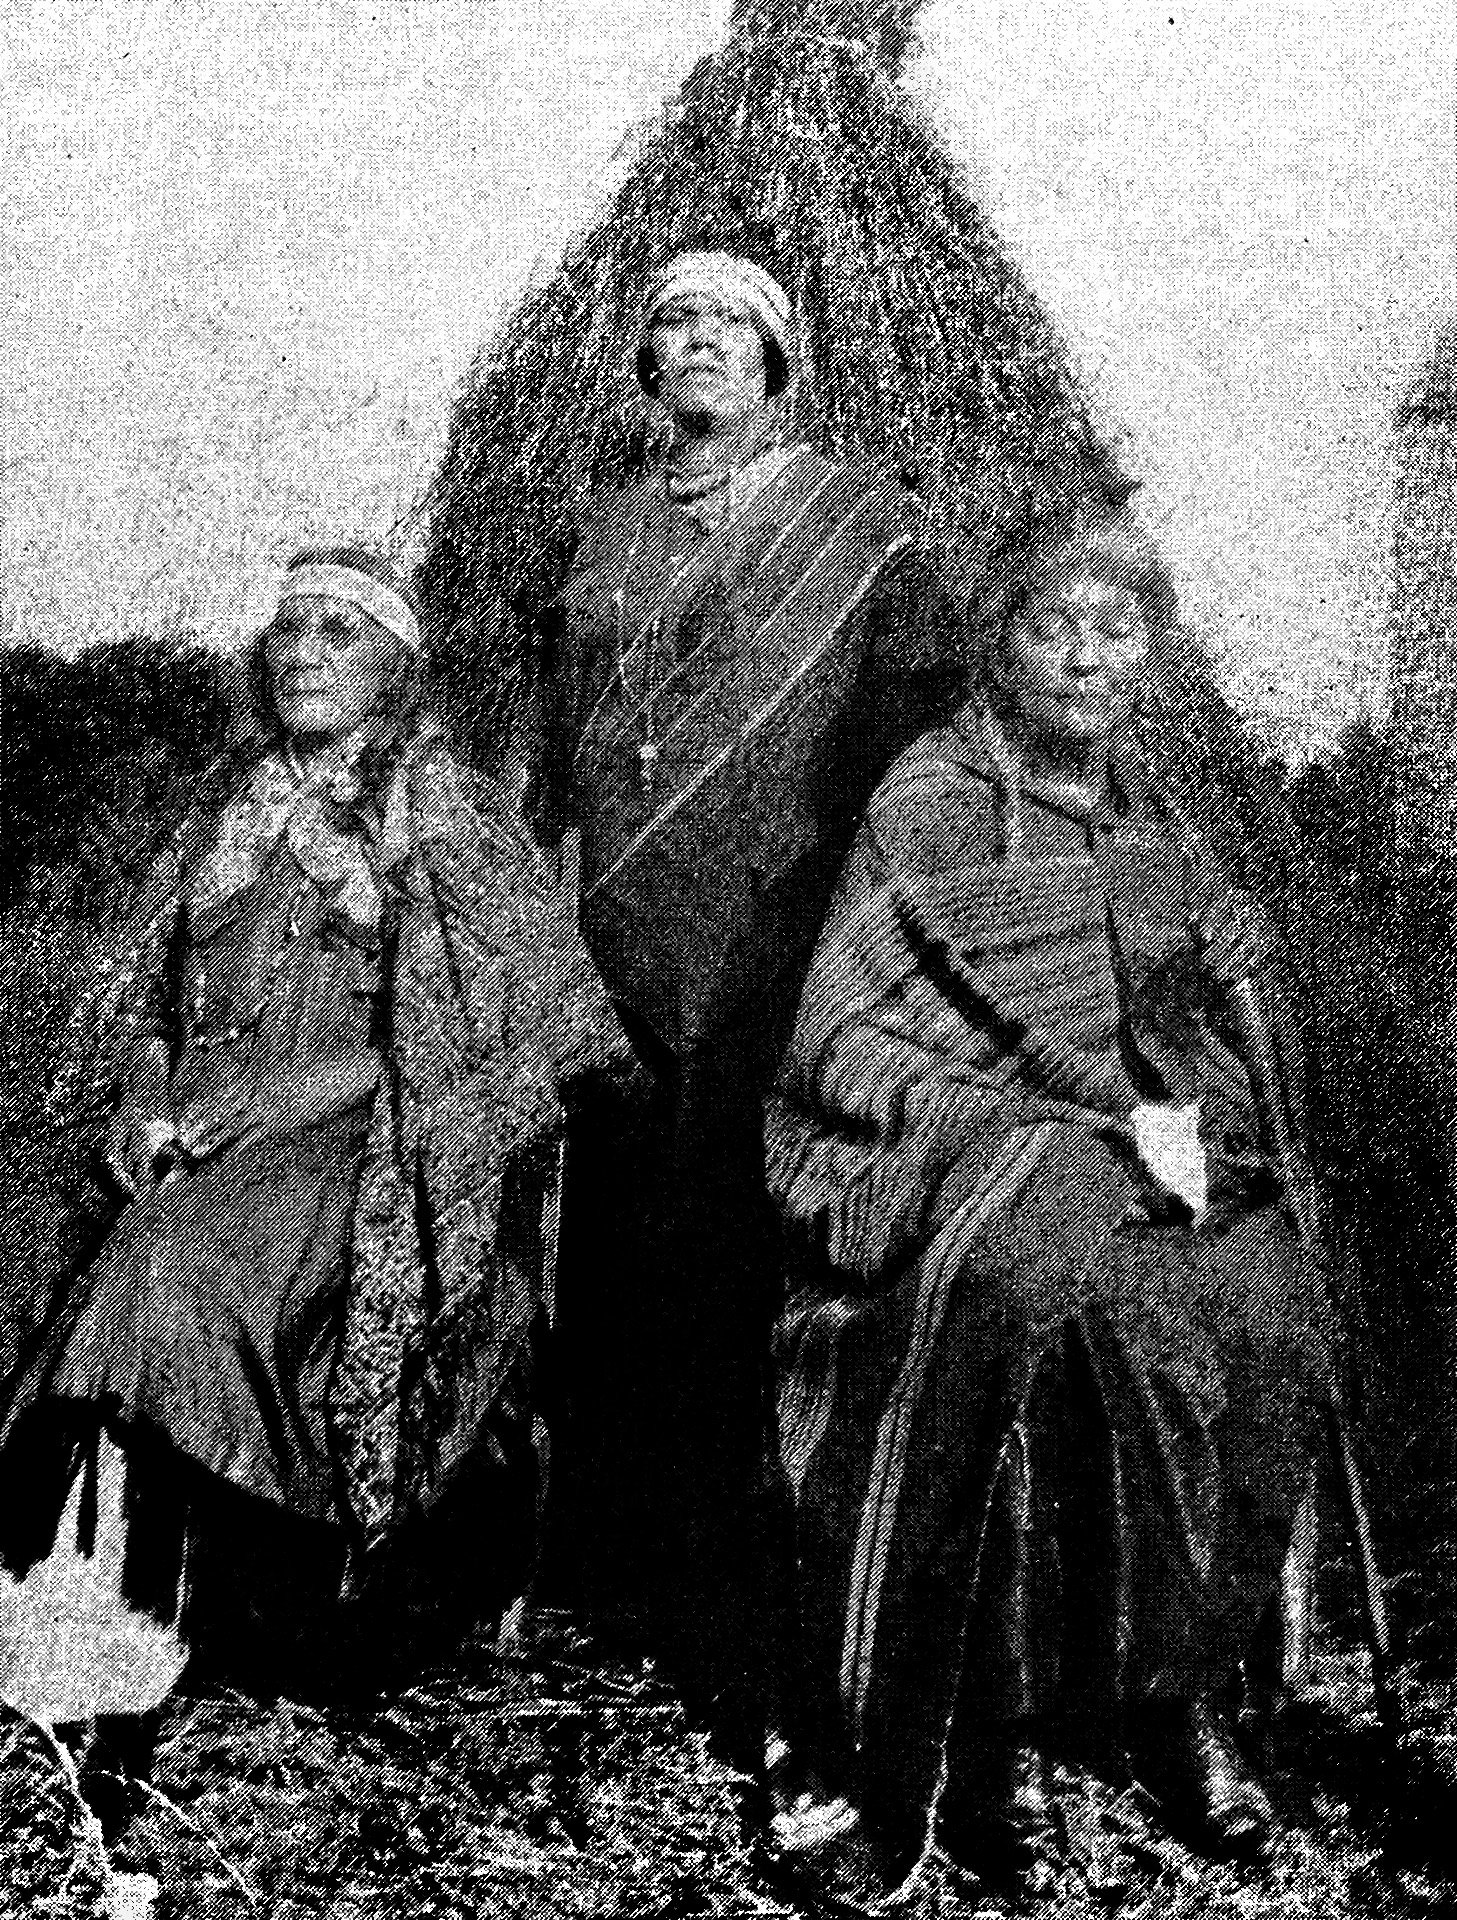 Aunt-Mary-Gus-Cuffee-Lillian-Thompson-Harvey-Aunt-Rose-Kellis-Williams-at-Eugene-Cuffees-1915-1930-The-Shinnecock-Indians-a-culture-history-vol-vi-Gaynell-Stone-1983 Shinnecock Powwow Grounds Jeremy Dennis On This Site